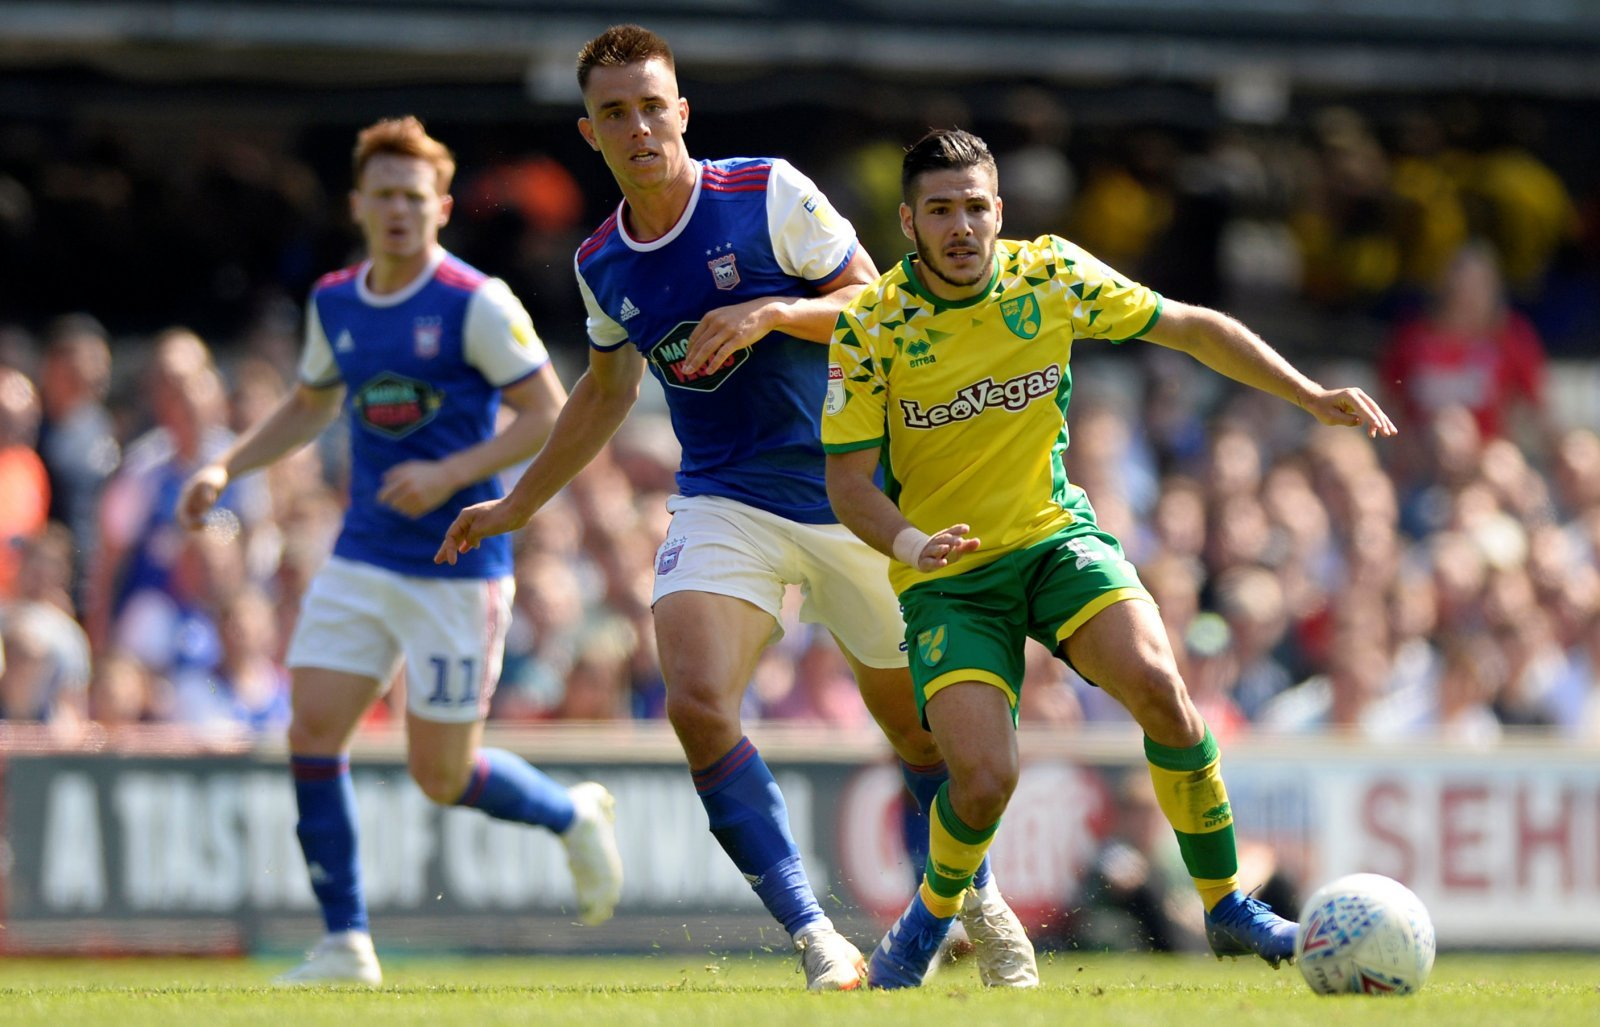 West Brom eyeing up raid on Championship rivals with a move for Ipswich's Jonas Knudsen